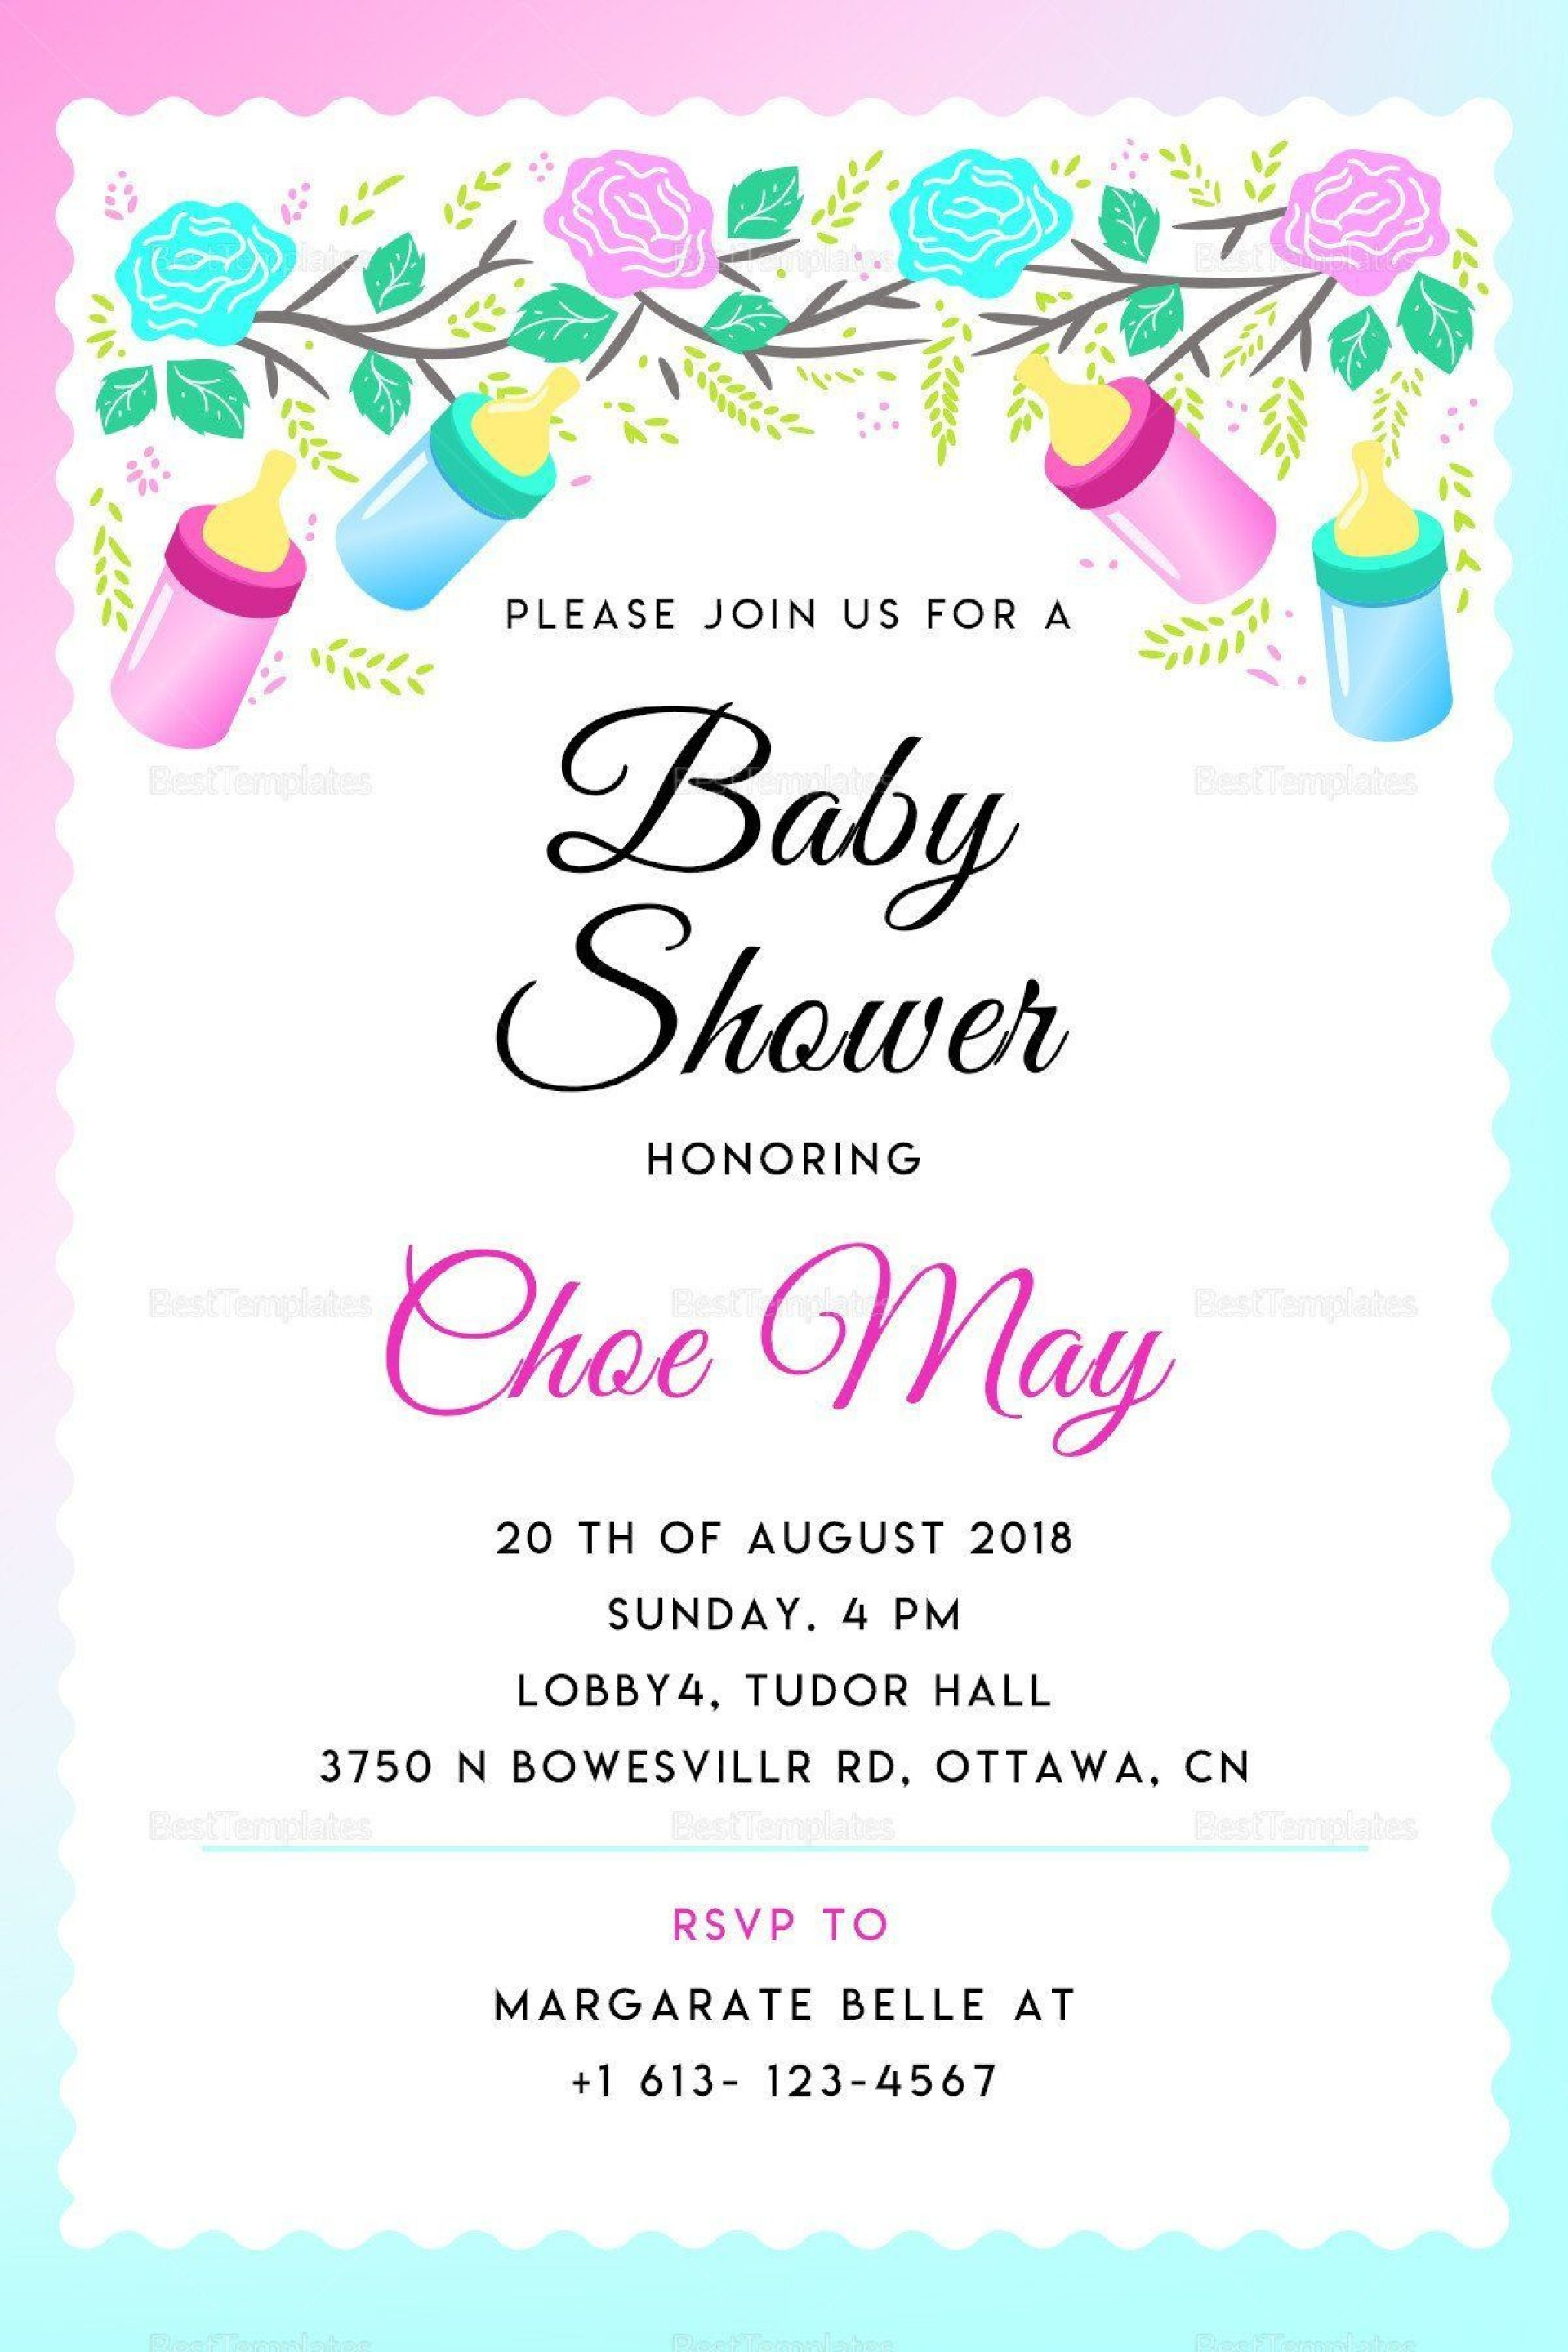 003 Incredible Baby Shower Invite Template Word Sample  Work Invitation Wording Format In M Free Microsoft1920